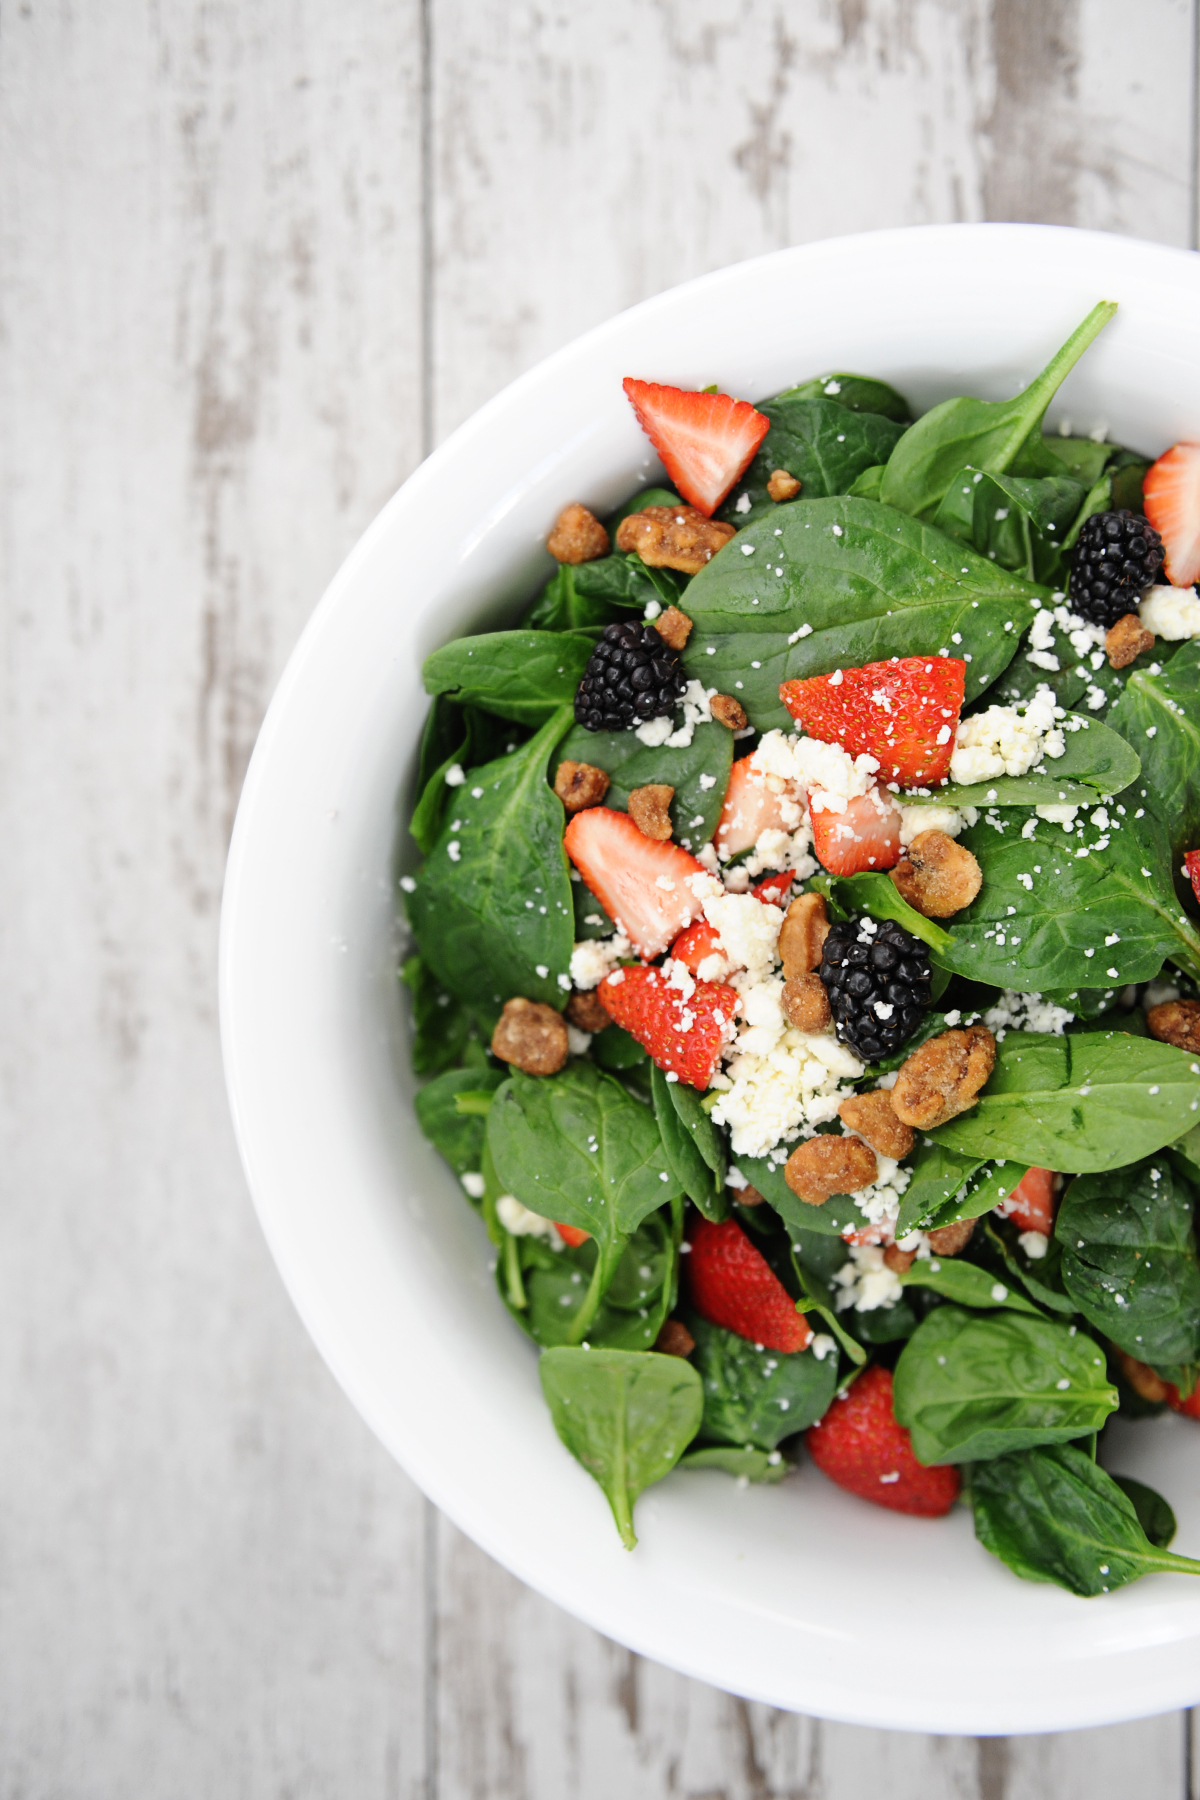 Spinach and strawberry salad 4